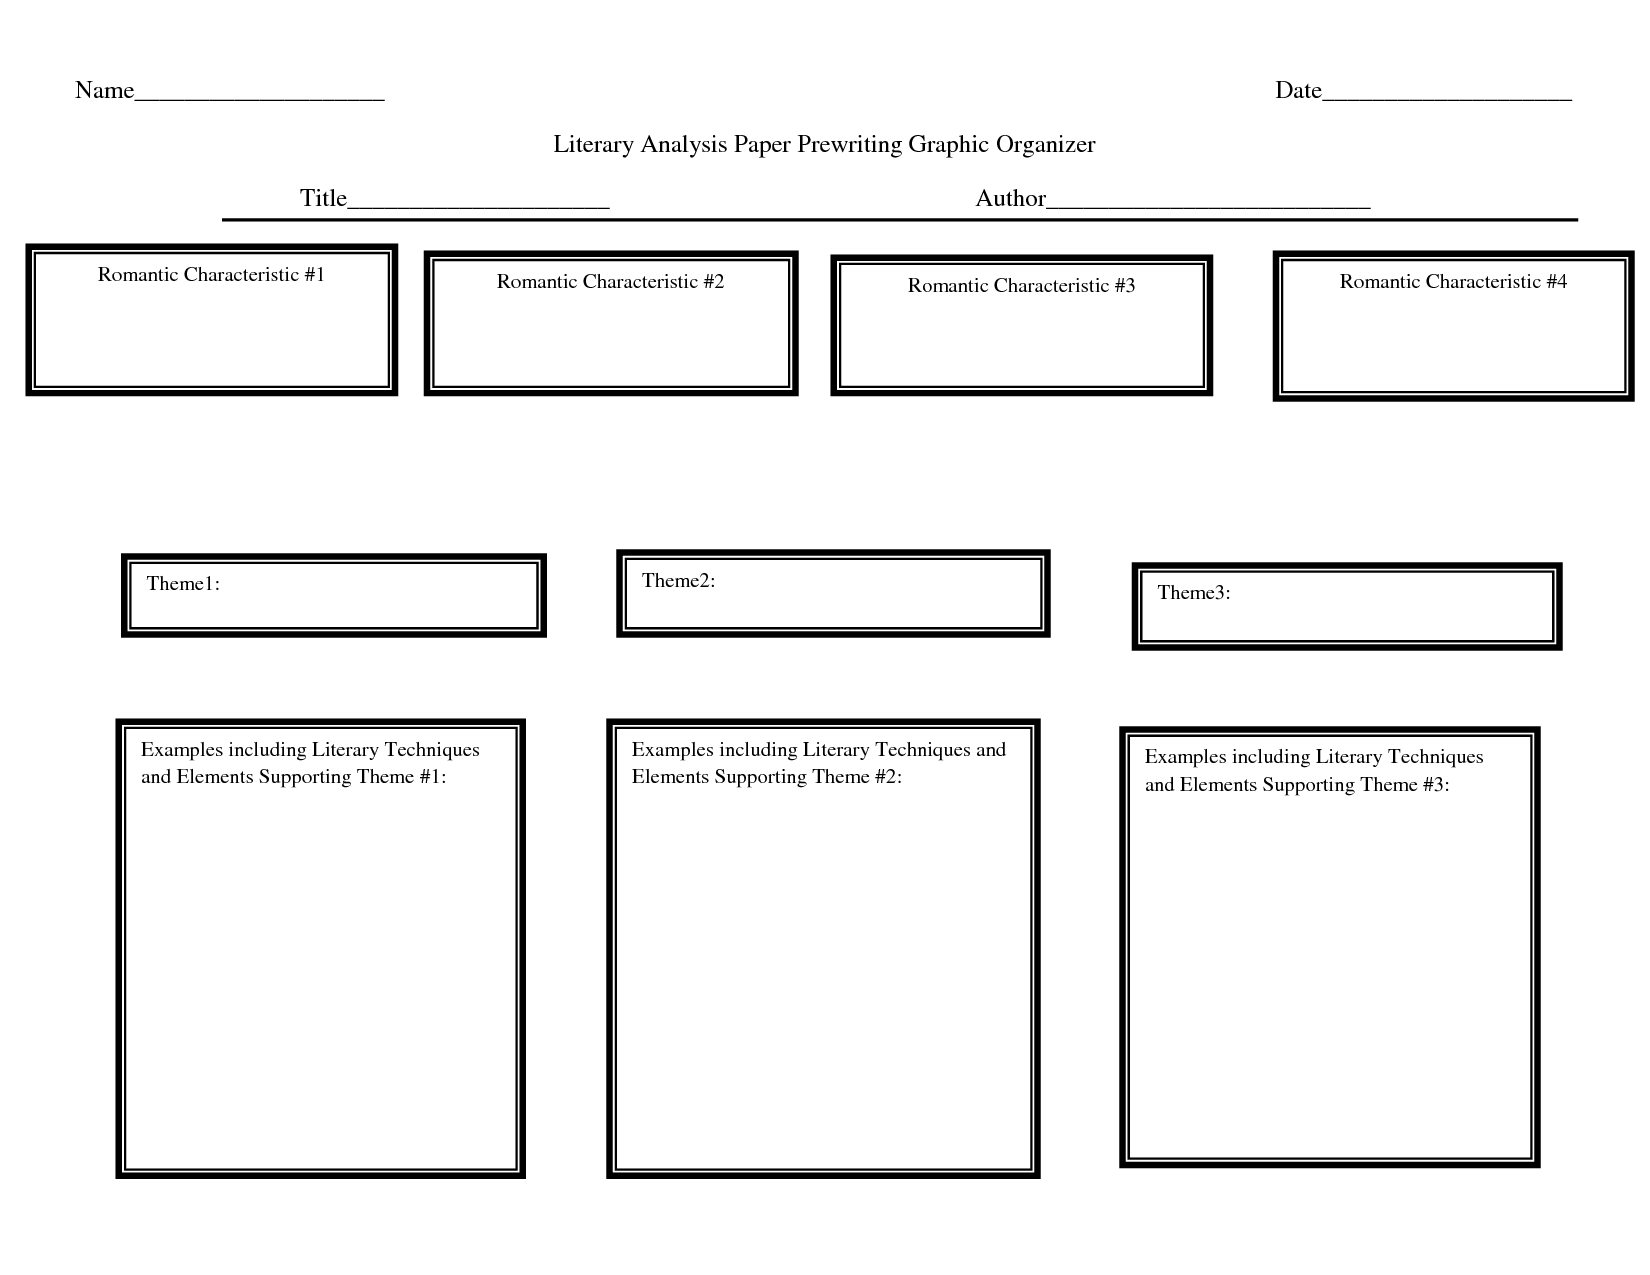 personification essay graphic organizer A graphic organizer with 3 columns, labeled 'simile', 'metaphor', and 'personification' students sort their examples of figurative language into the.